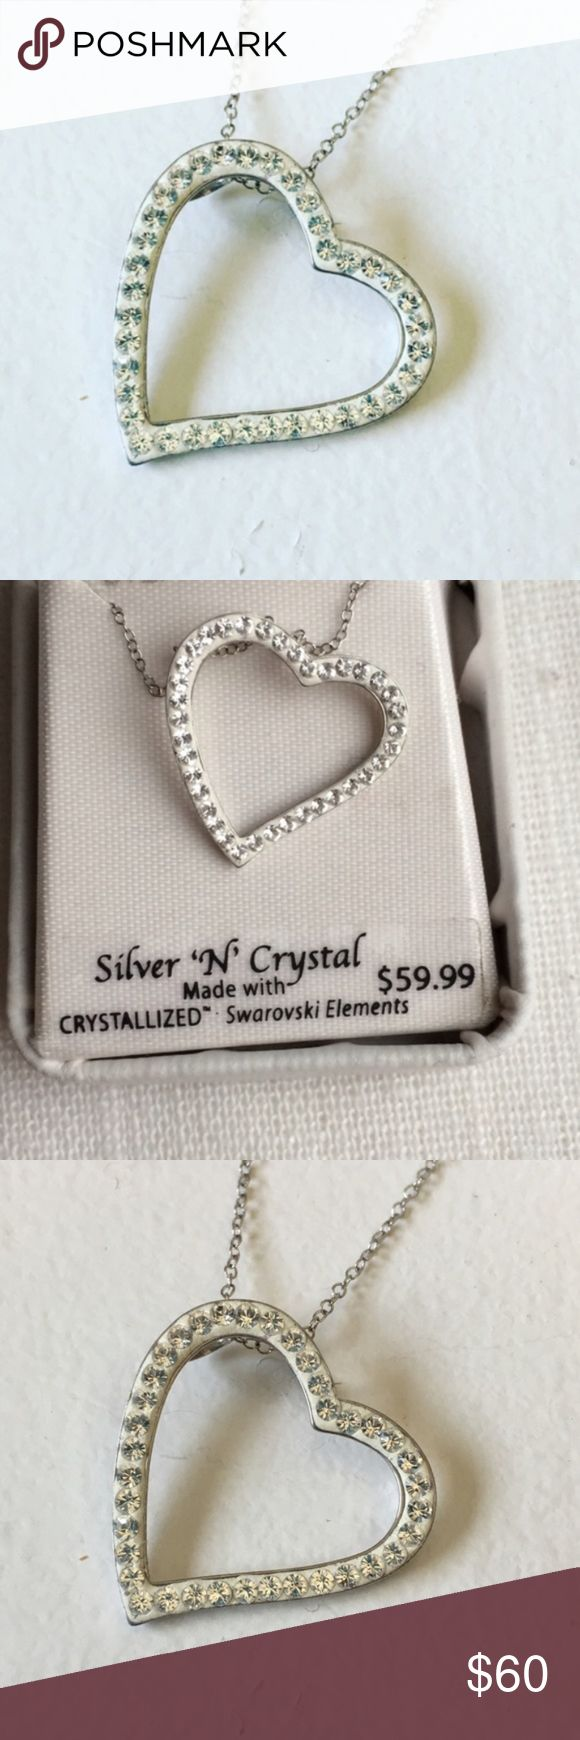 """NEW Sterling Silver Swarovski Heart Necklace Brand: unbranded  Condition: Brand new in box  MSRP: $59.99  Size: 18"""" chain  Material: Sterling silver & swarovski elements crystals Jewelry Necklaces"""